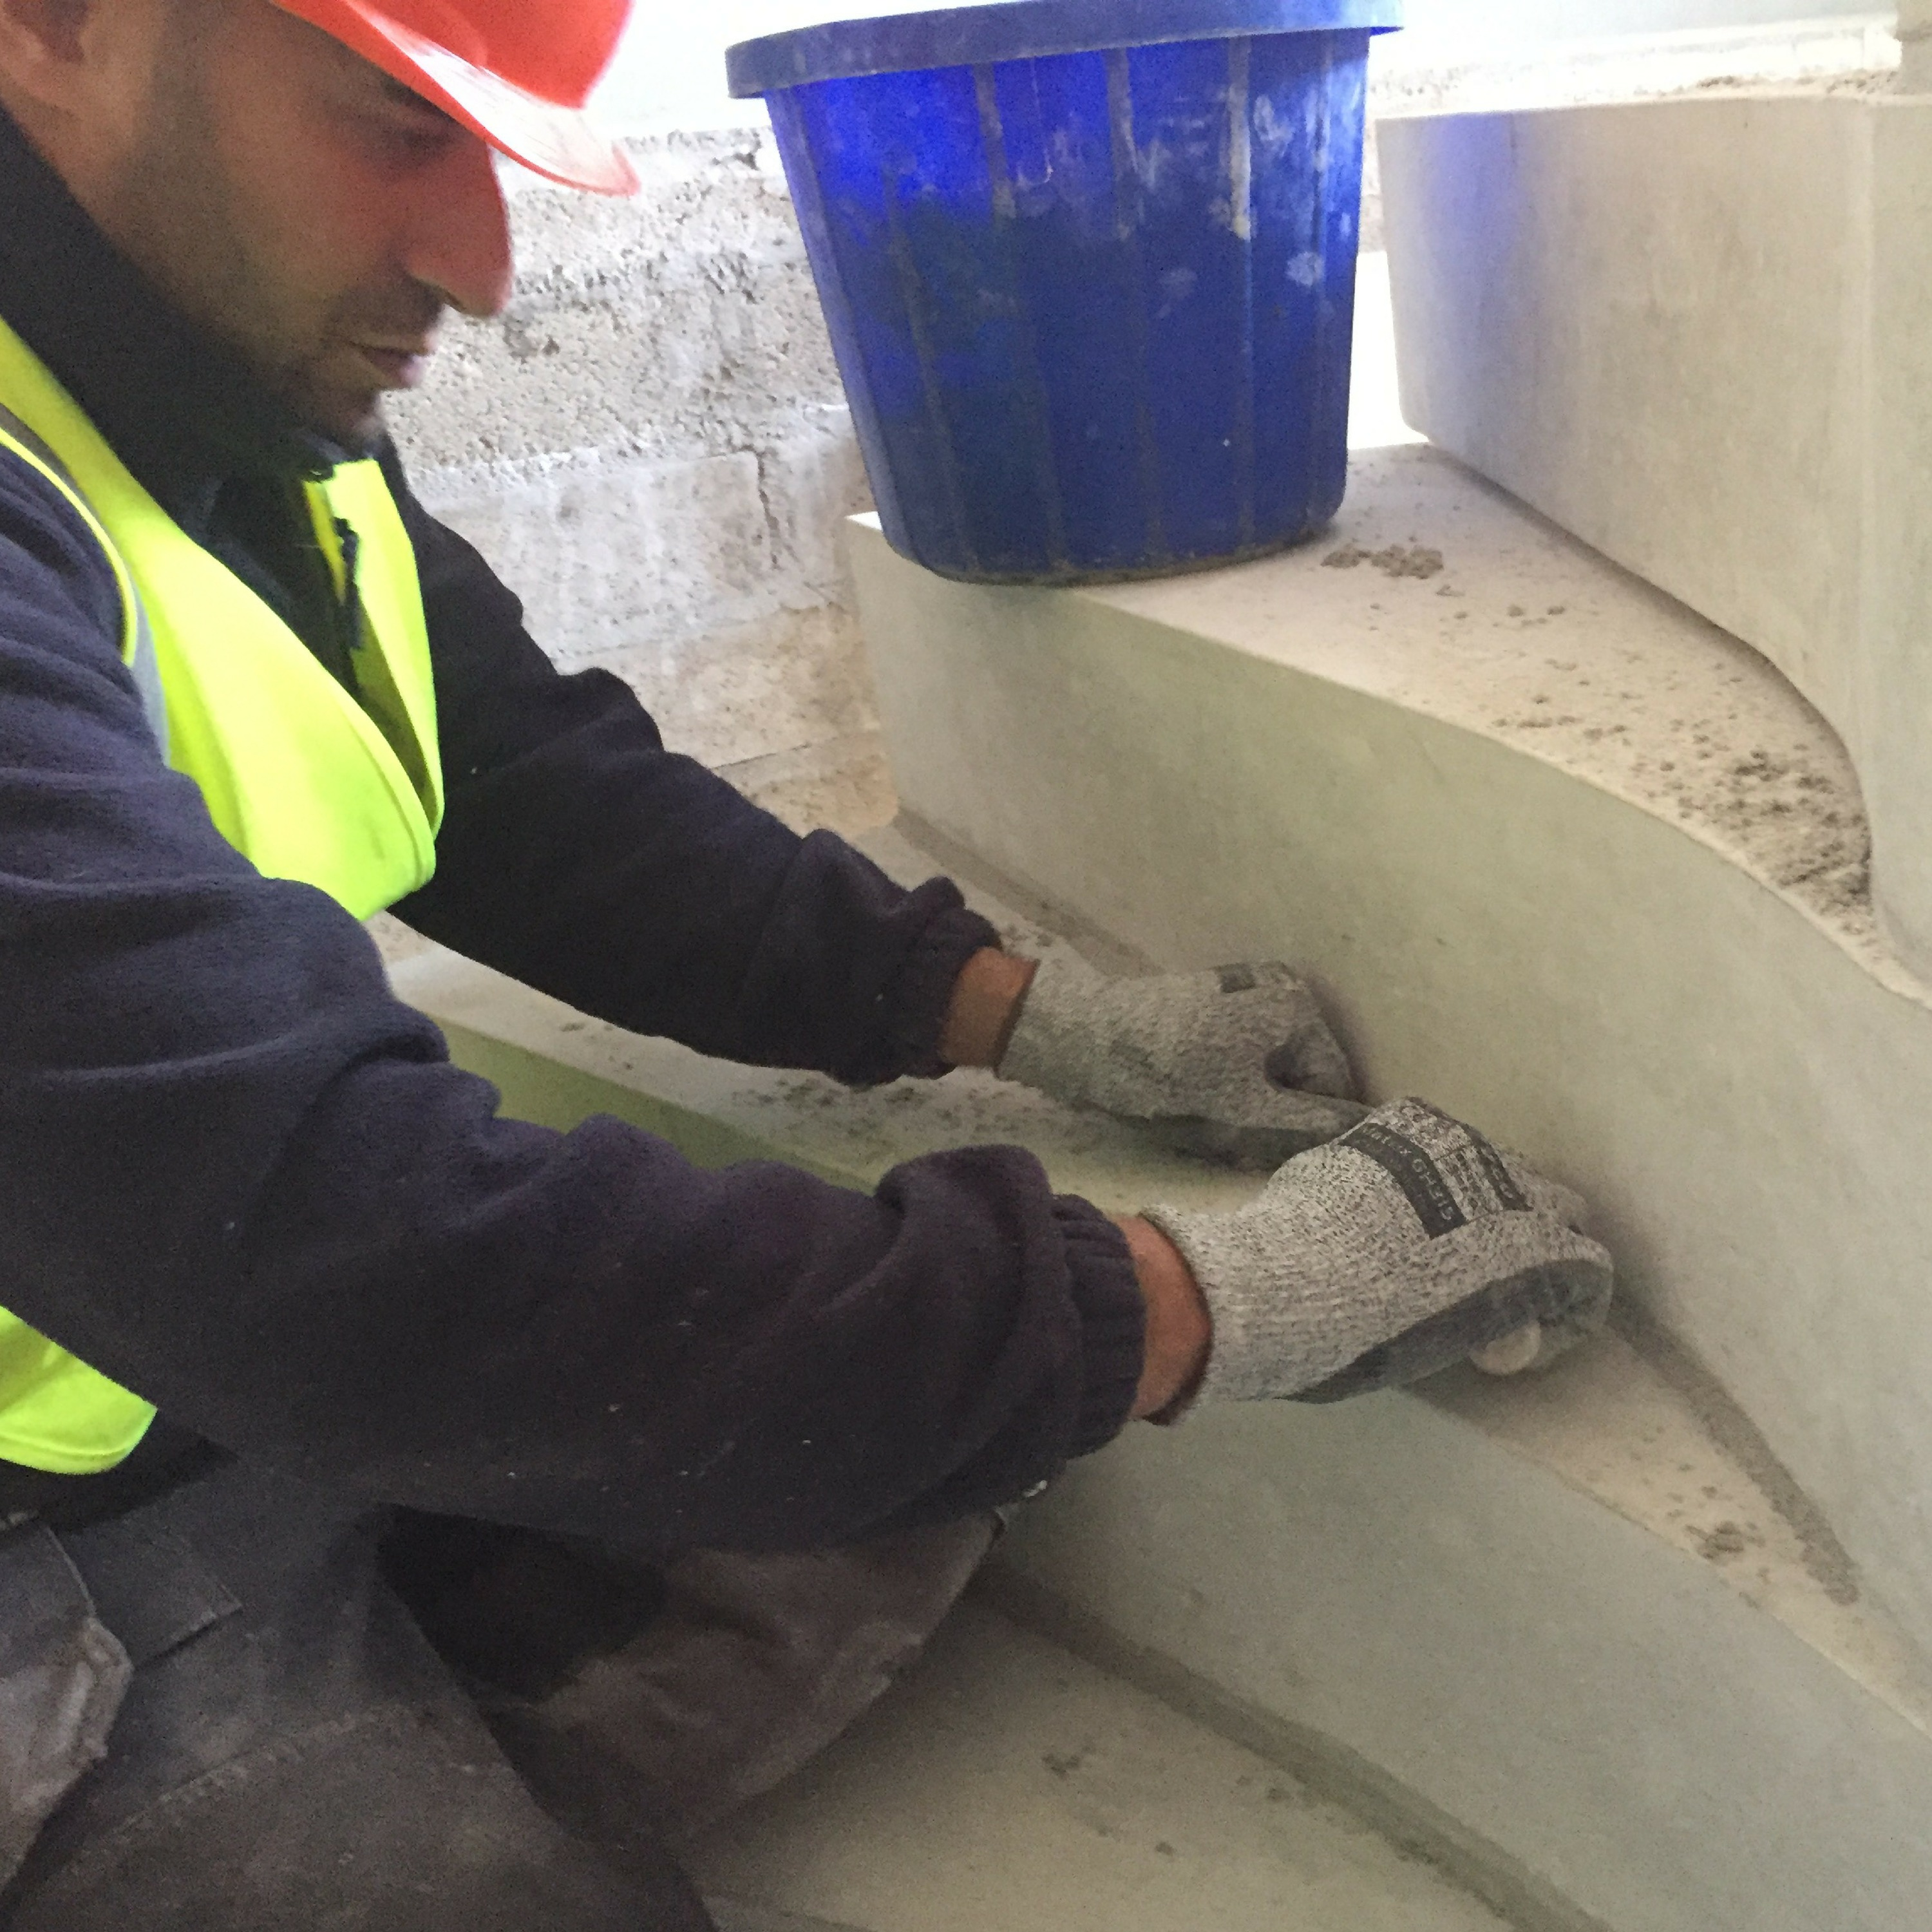 Staircase fitter working on concrete tread